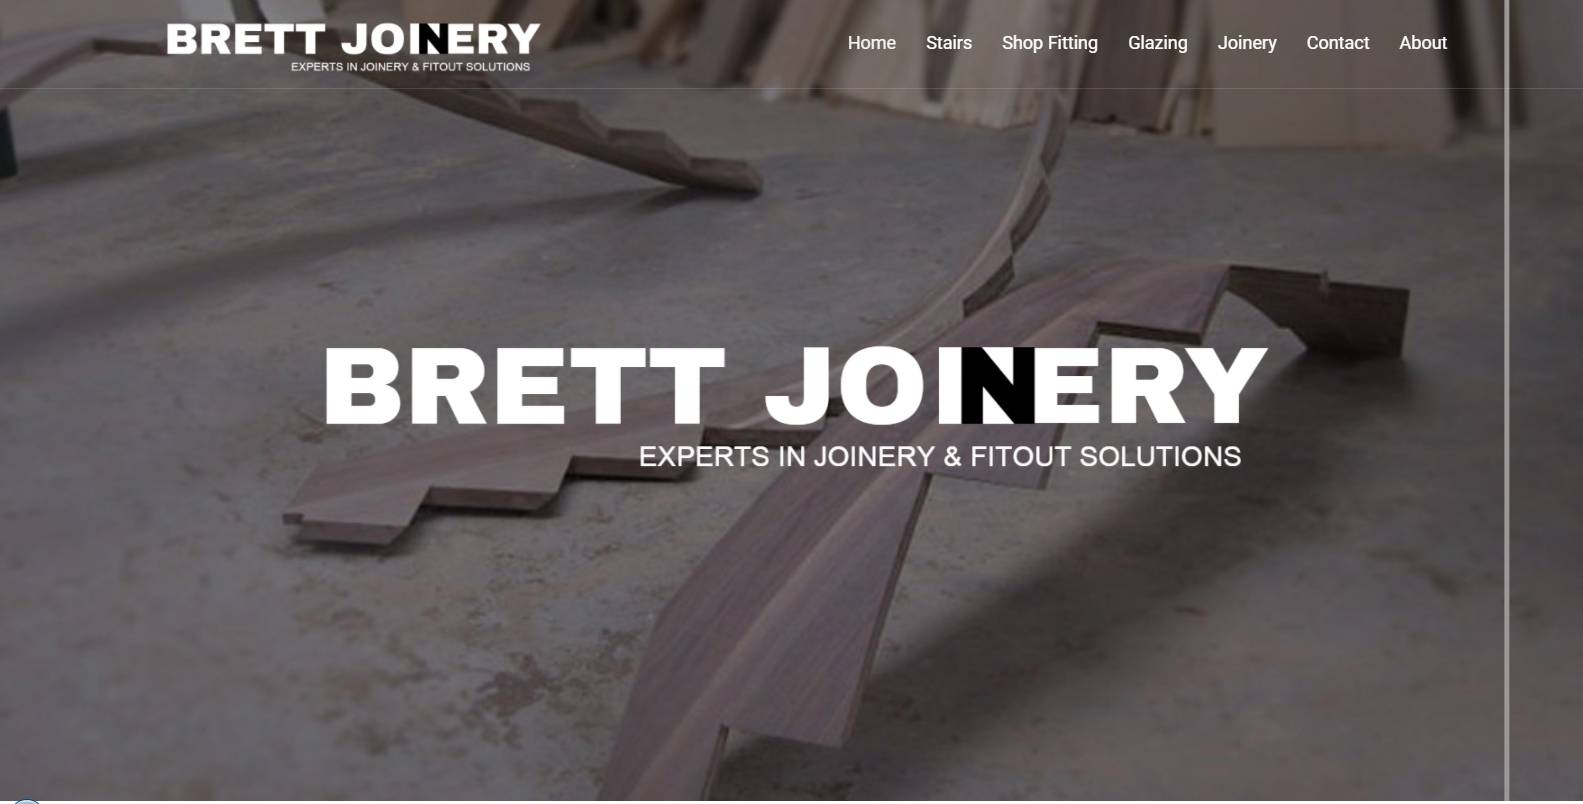 brettjoinery